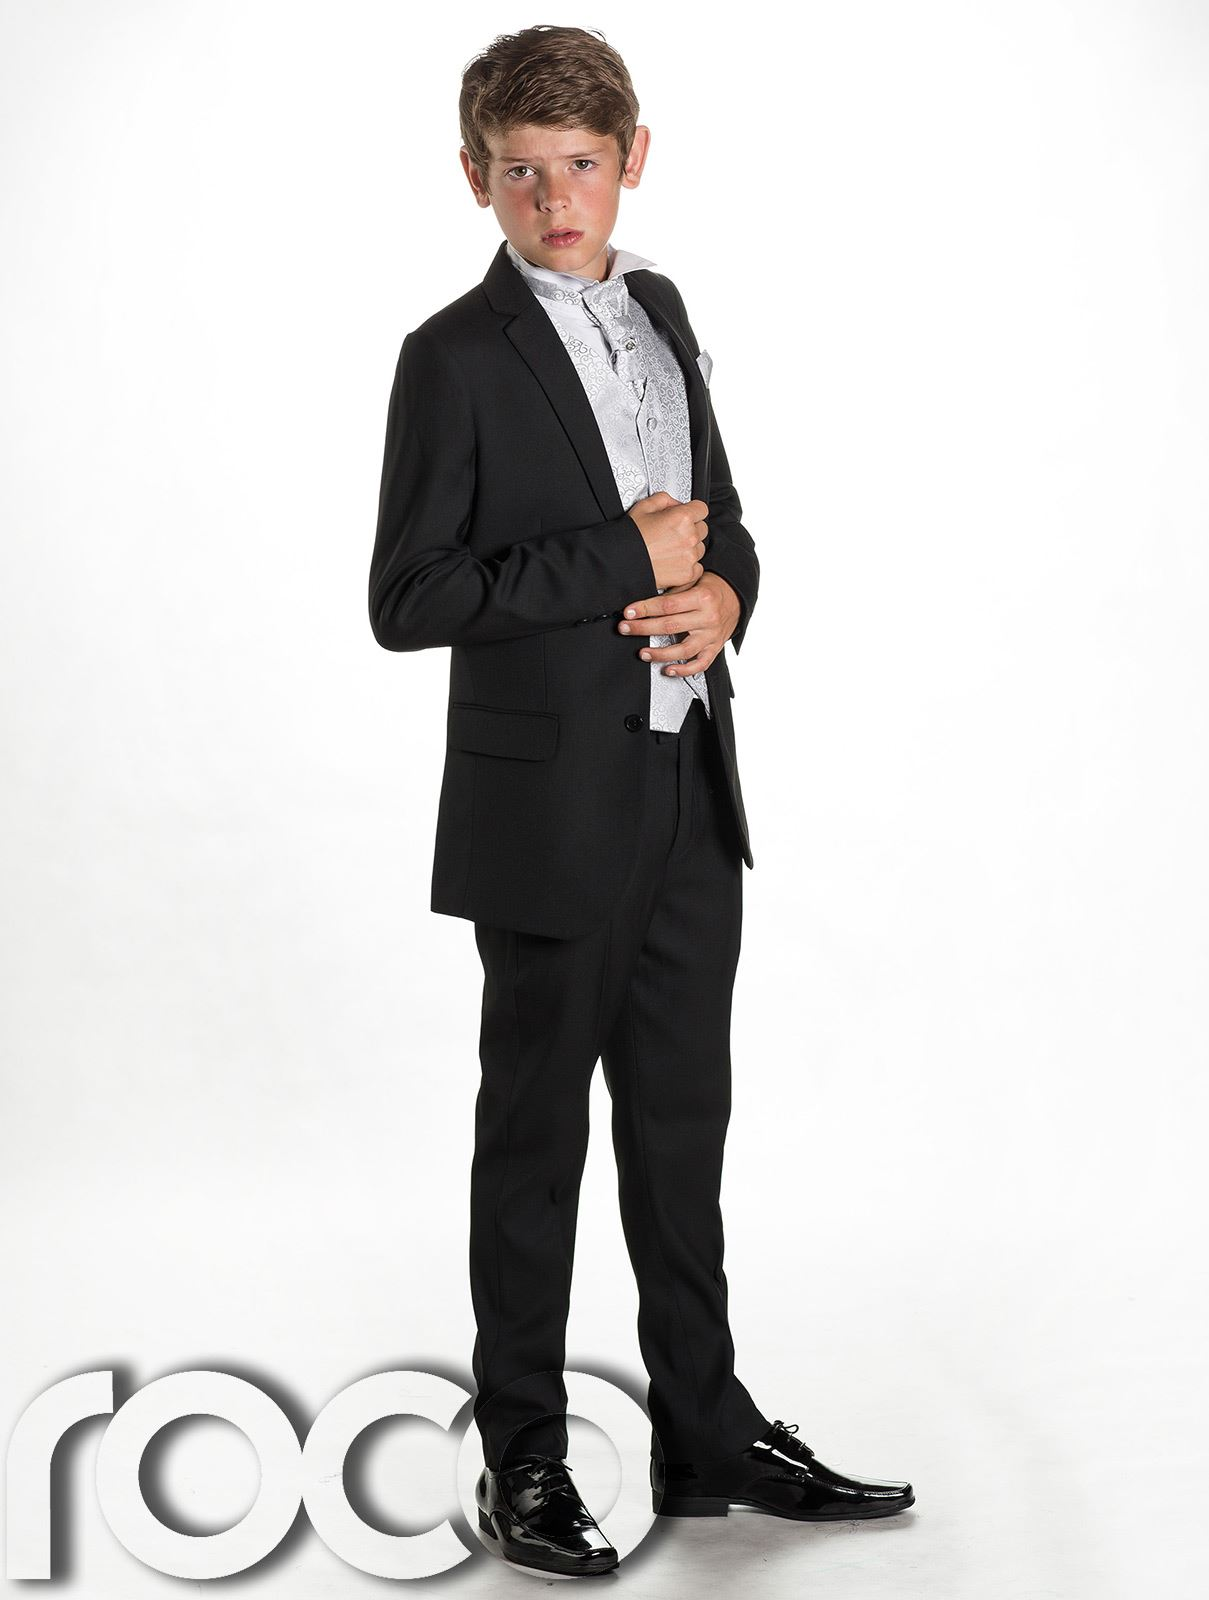 Boys Black Wedding Suit, Page Boy Suit, Boys Formal Suit, Black Suit ...